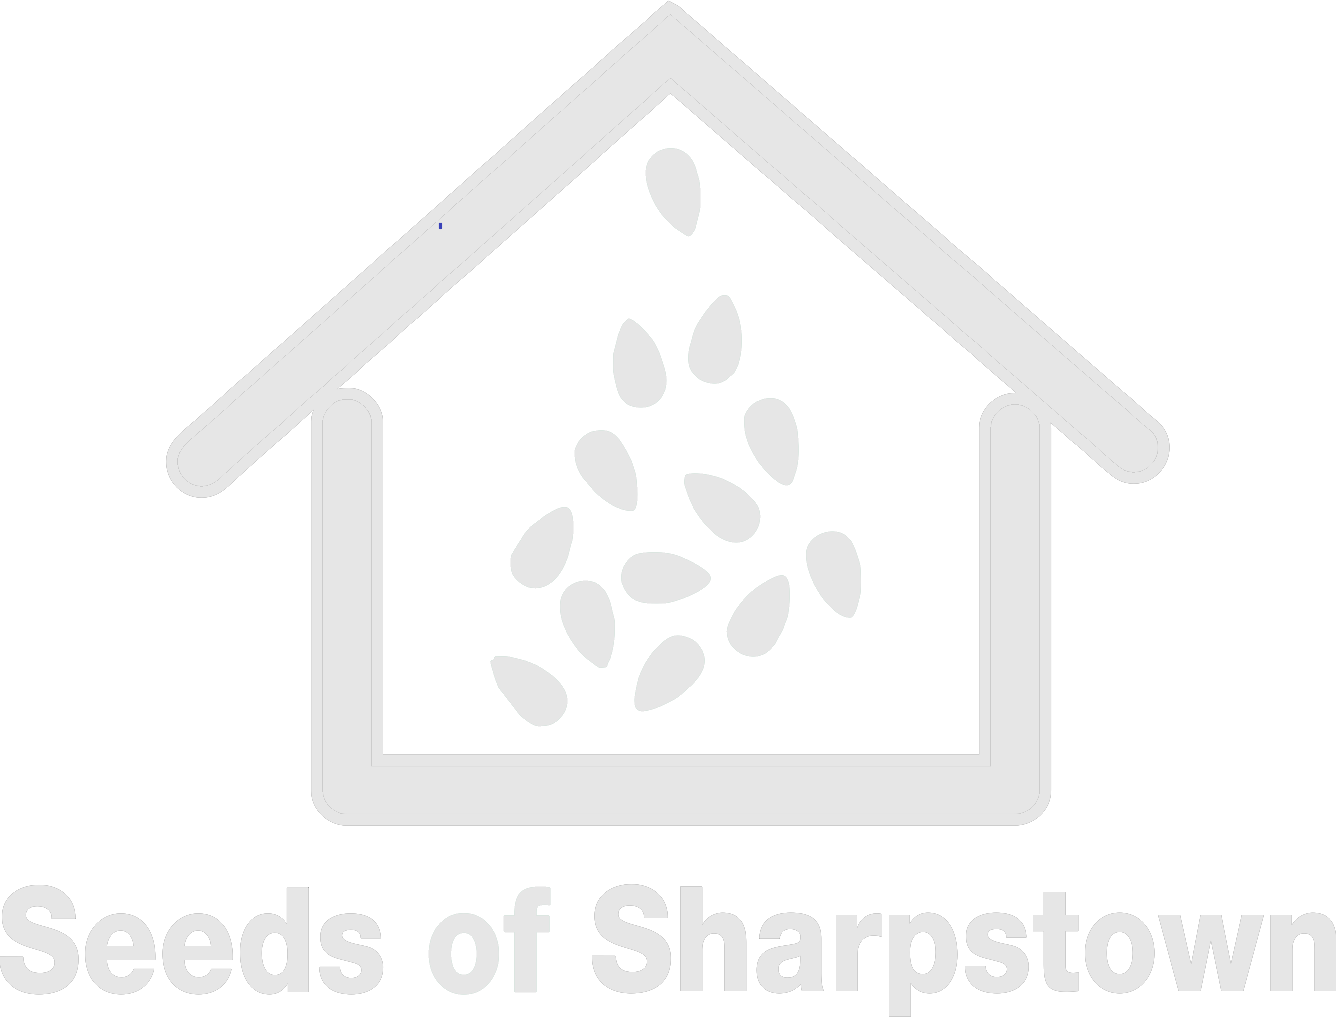 Seeds of Sharpstown